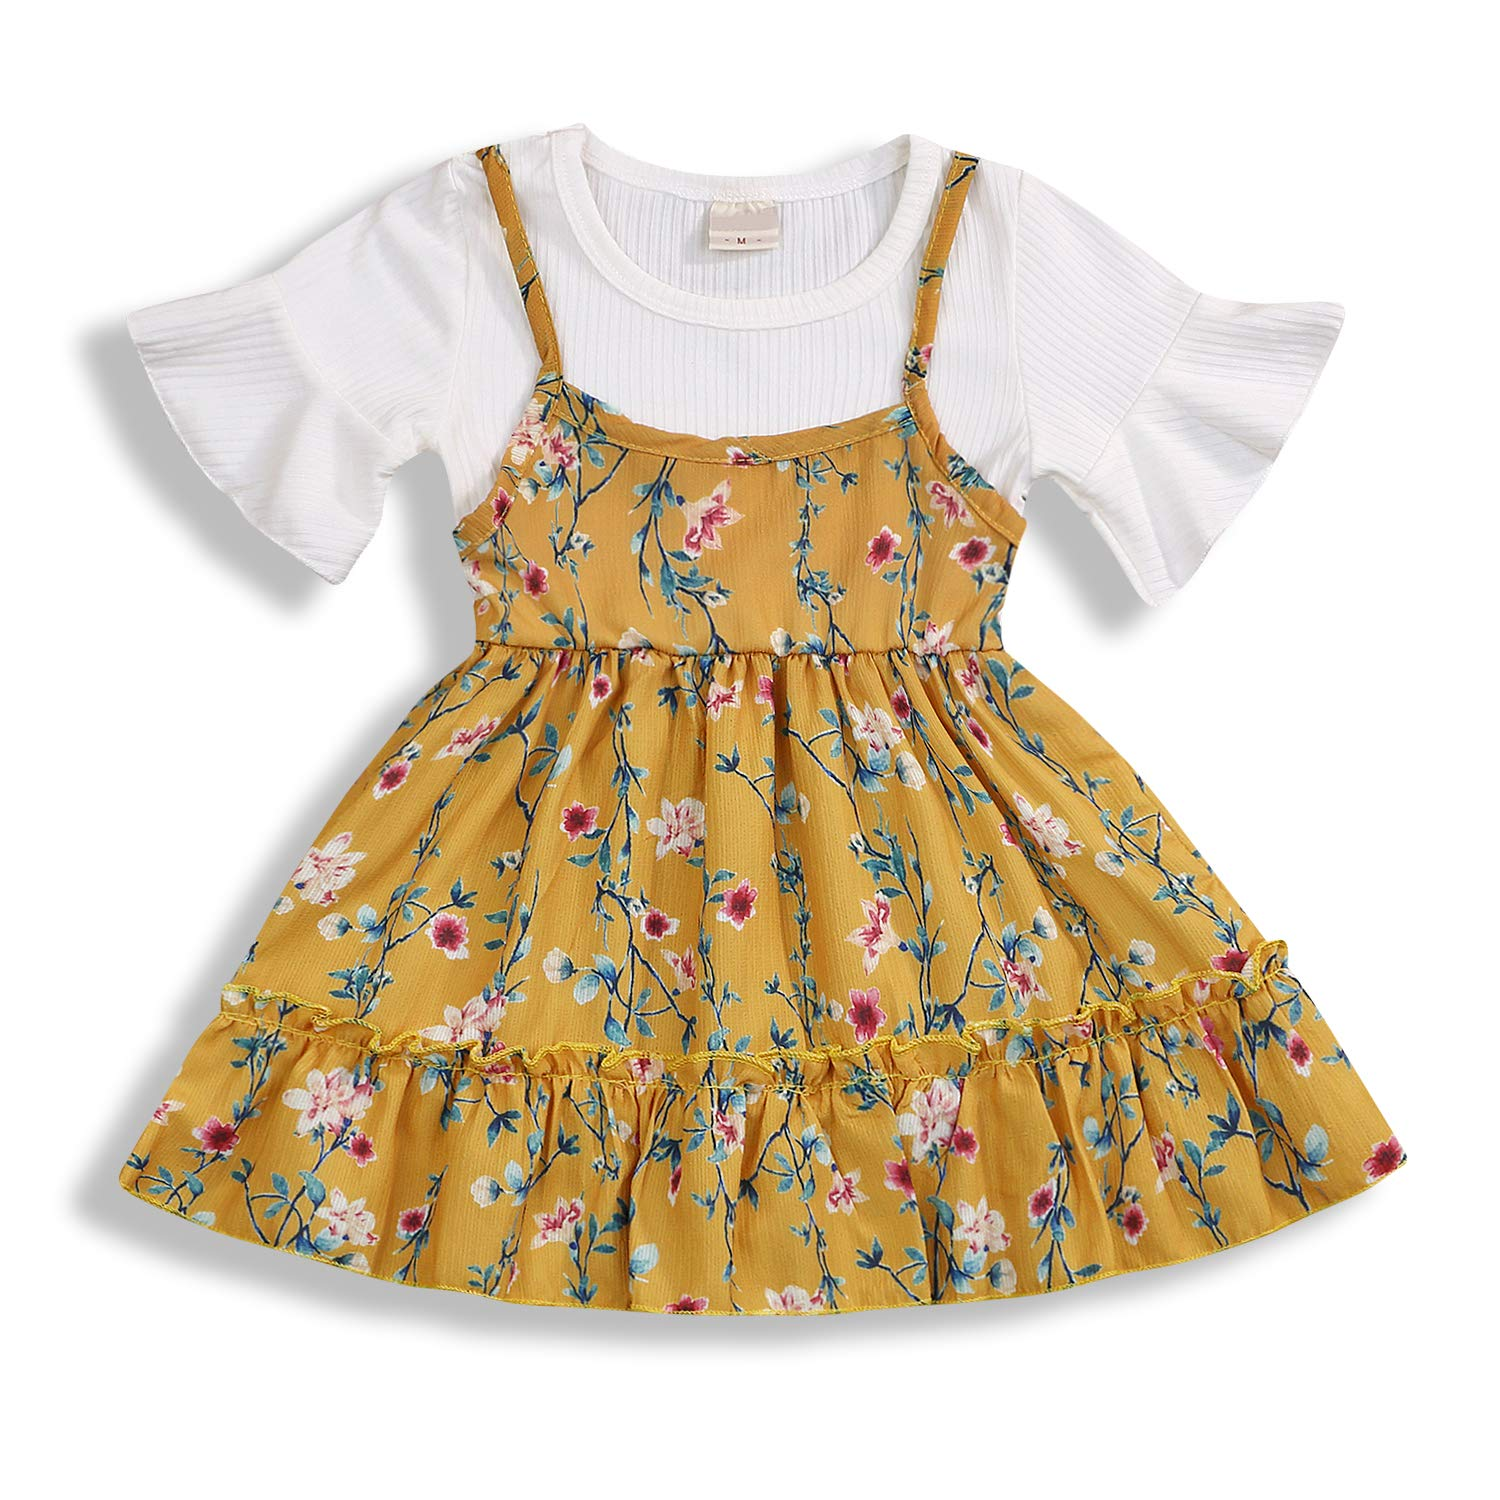 Toddler Baby Girls Summer Outfit Fake Two-Piece Suit Floral Short Sleeve Round Neck A-line Dress Vacation Suits